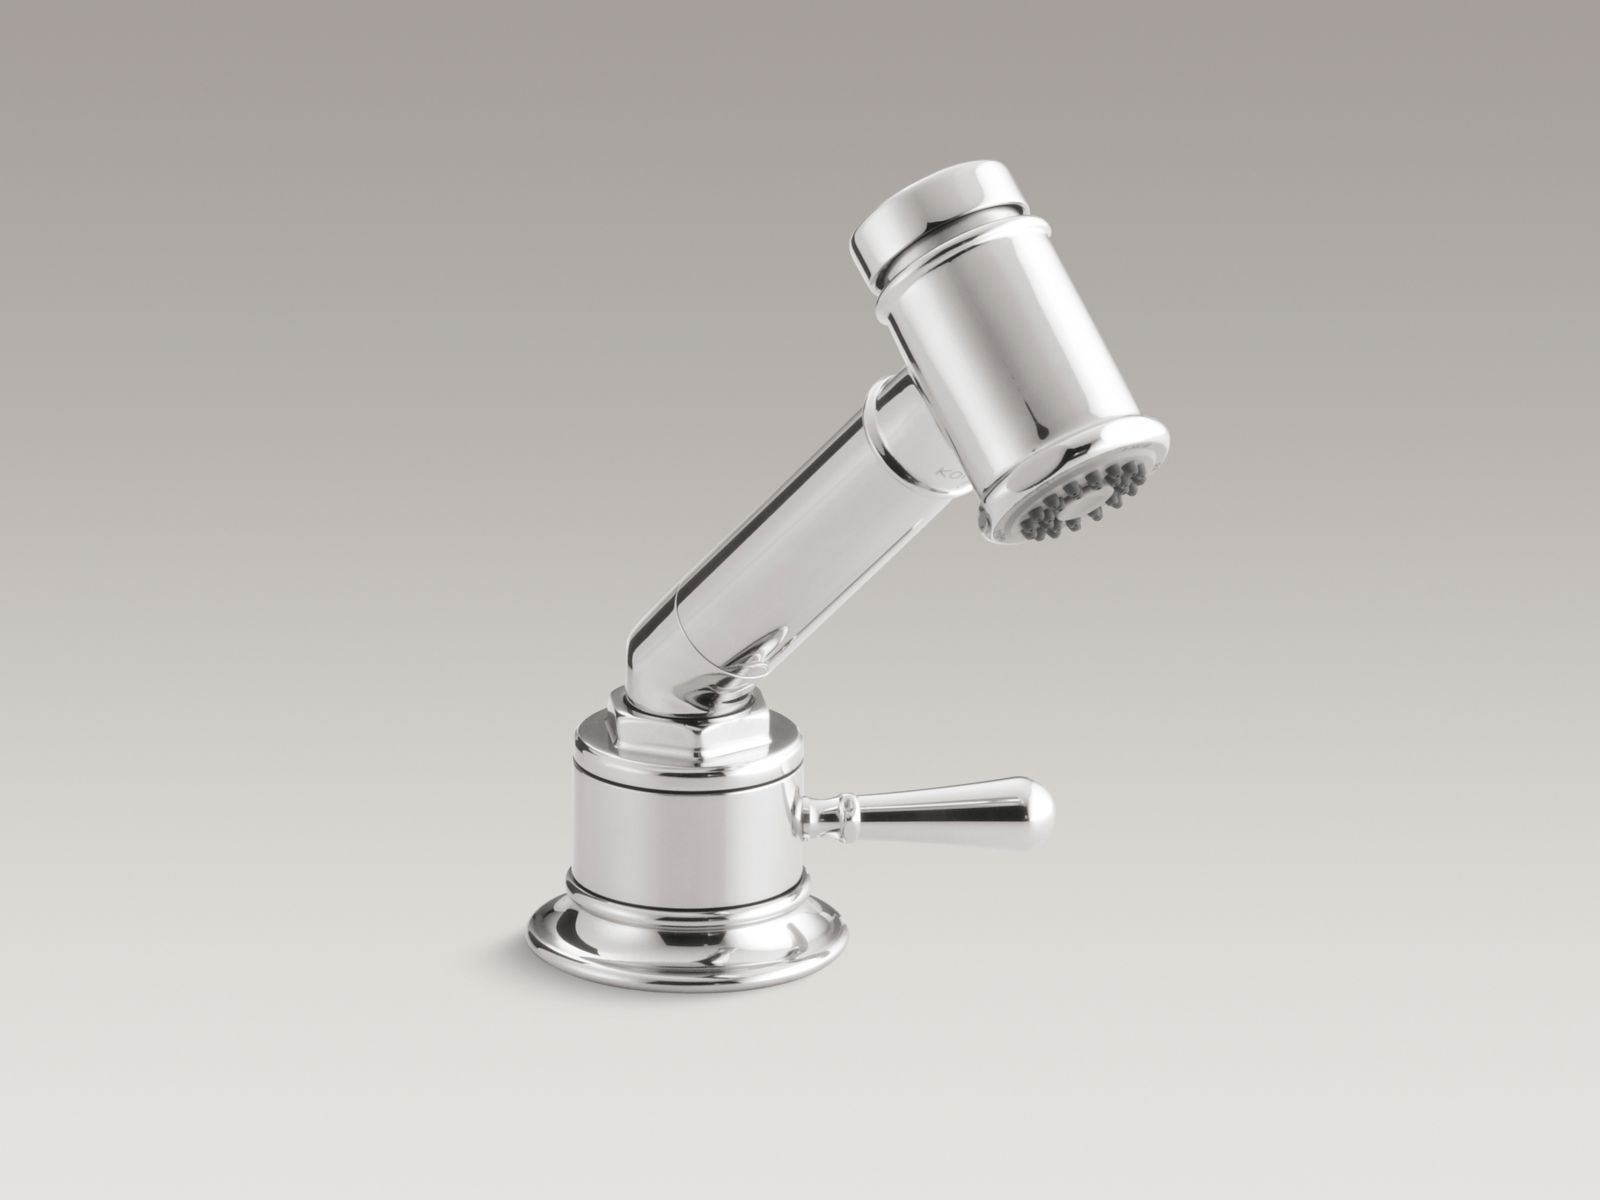 Kohler K-7344-4-S HiRise Stainless Independent Sidespray with Valve Stainless Steel